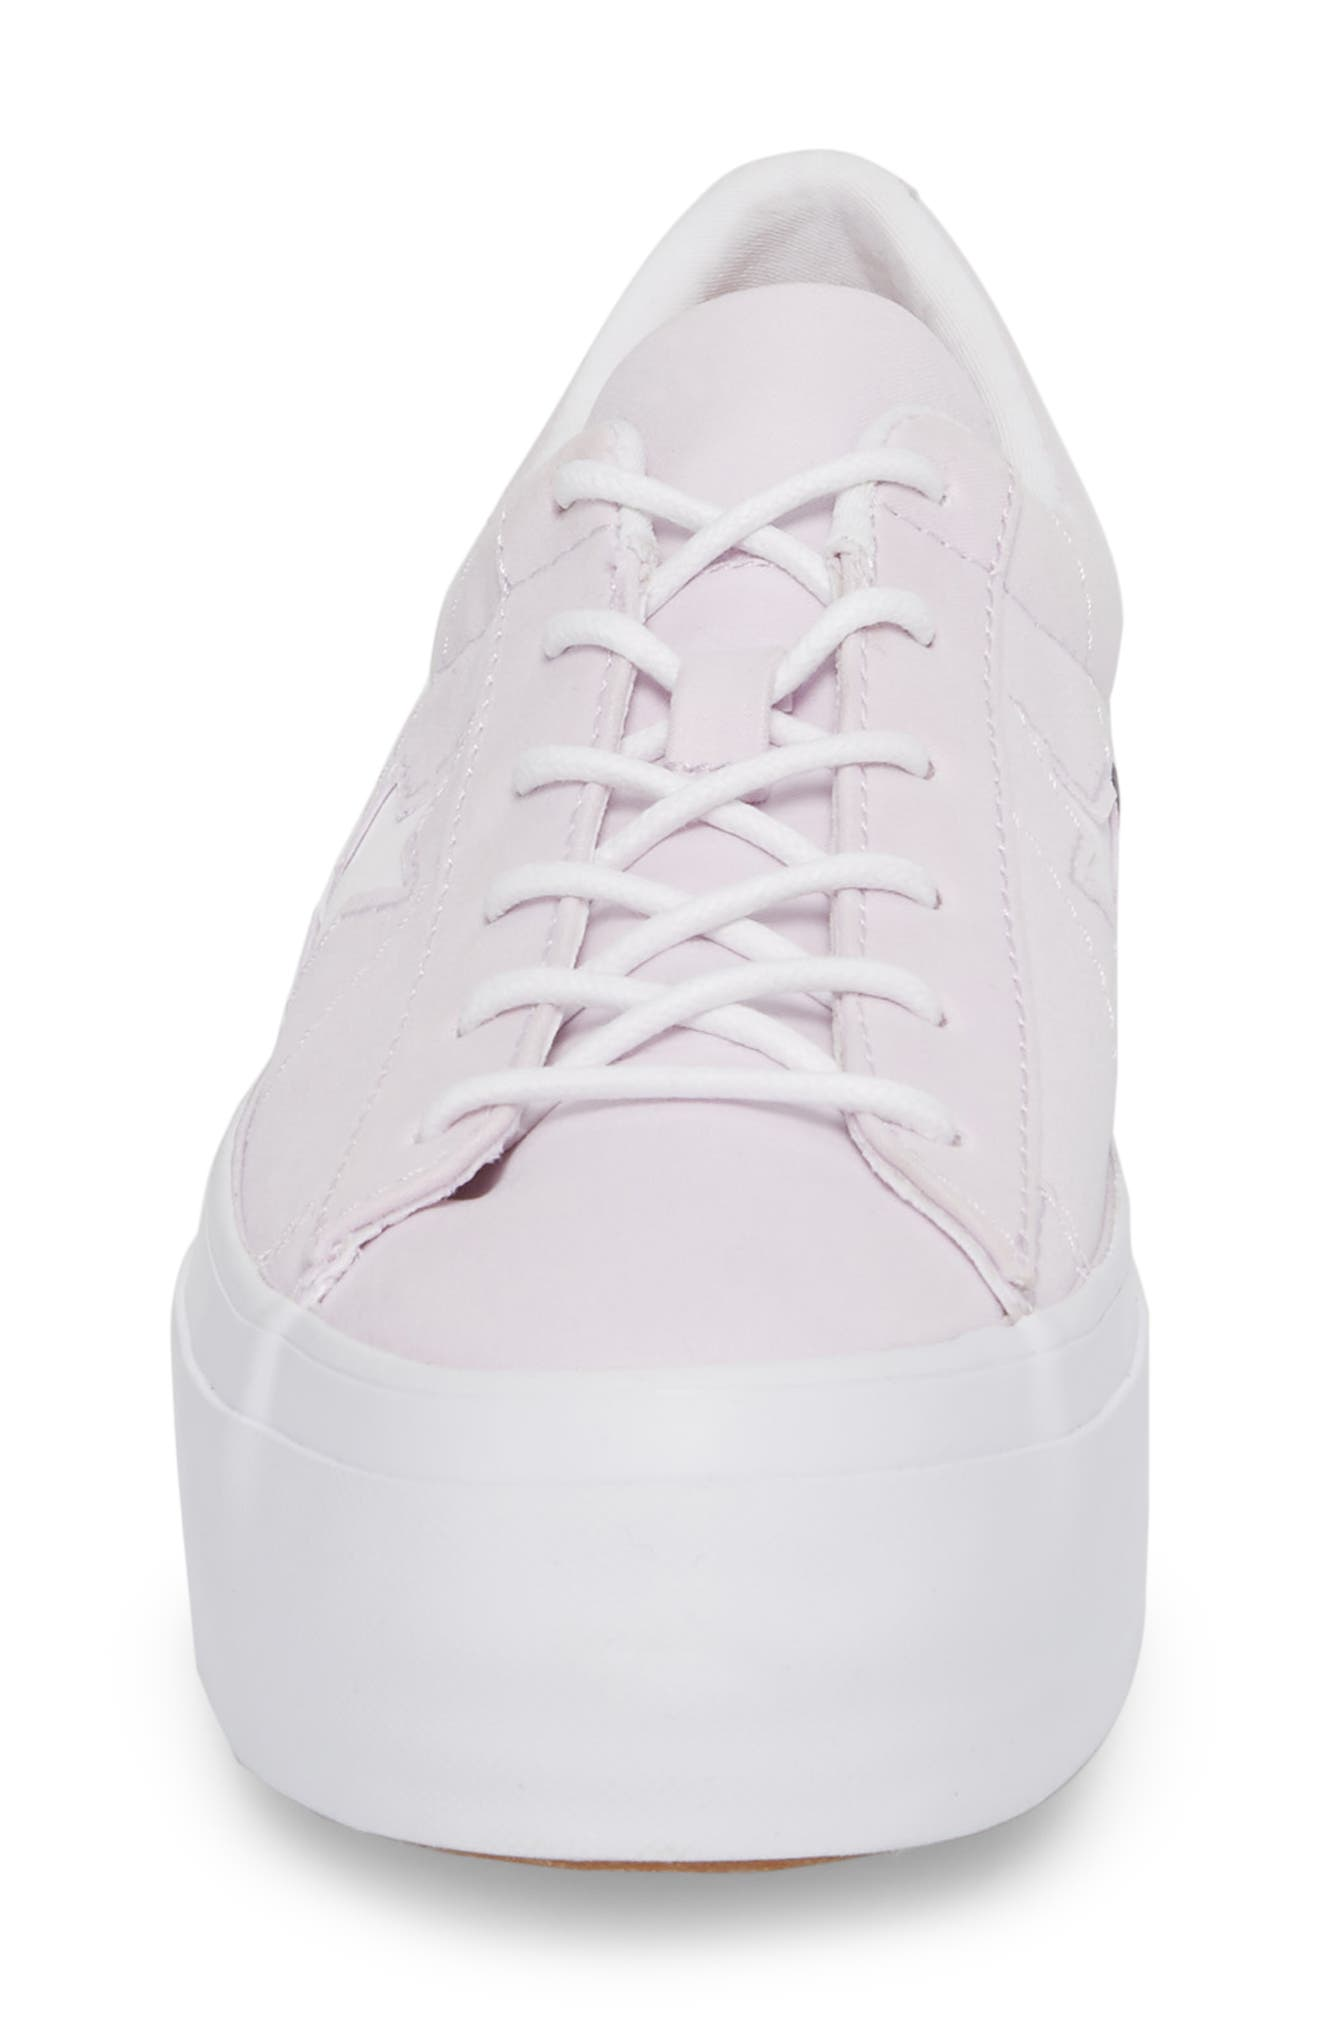 Chuck Taylor<sup>®</sup> All Star<sup>®</sup> One Star Platform Sneaker,                             Alternate thumbnail 4, color,                             Barely Grape